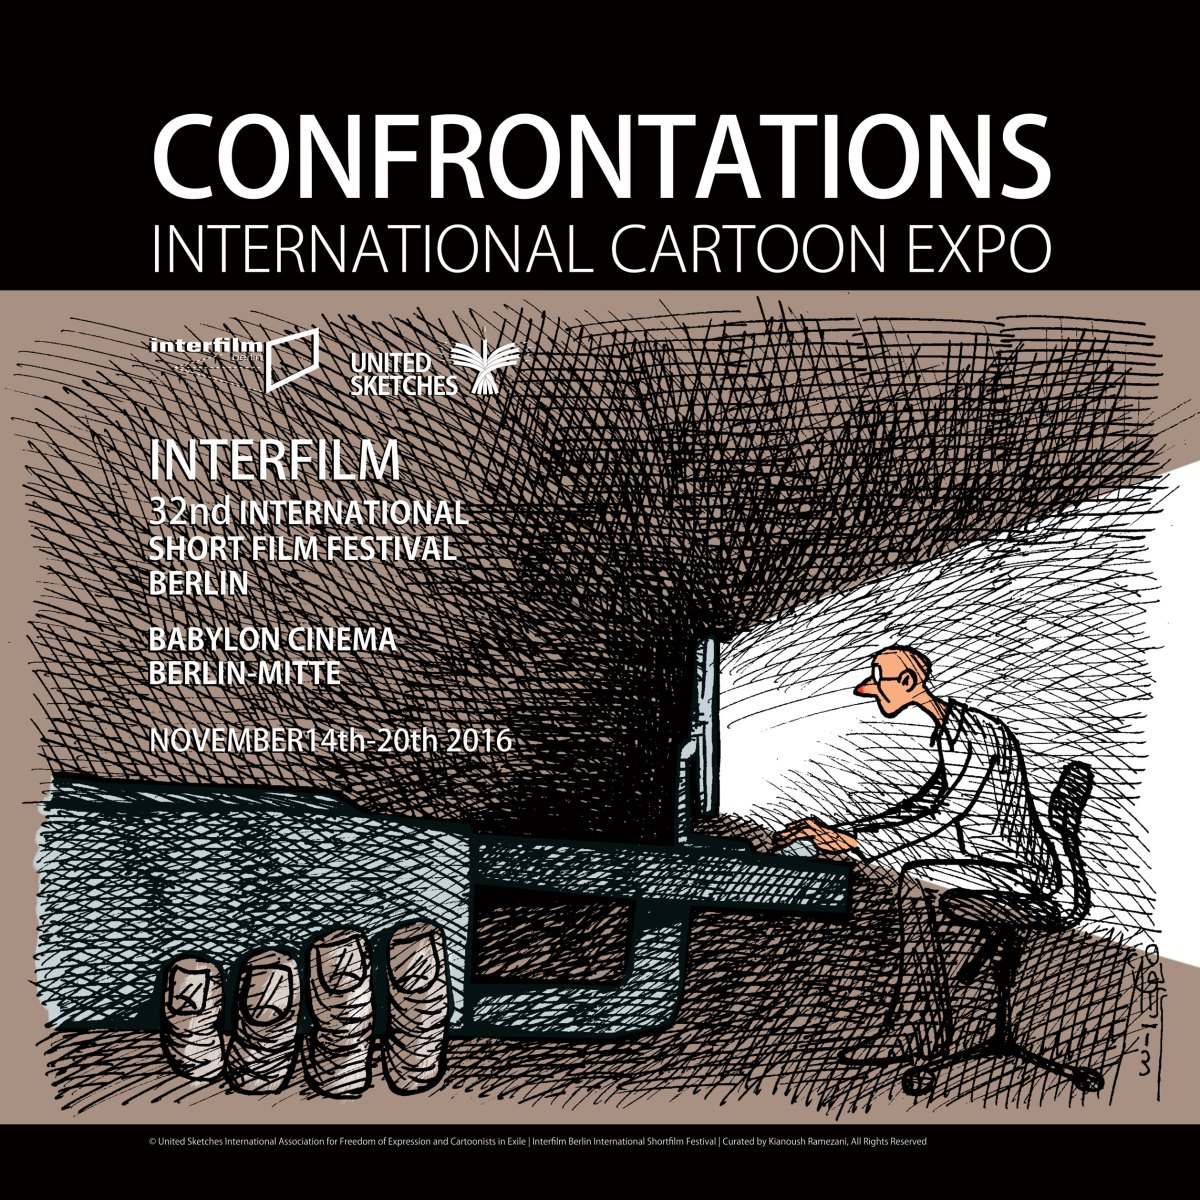 Confrontations International Cartoon Expo - Berlin